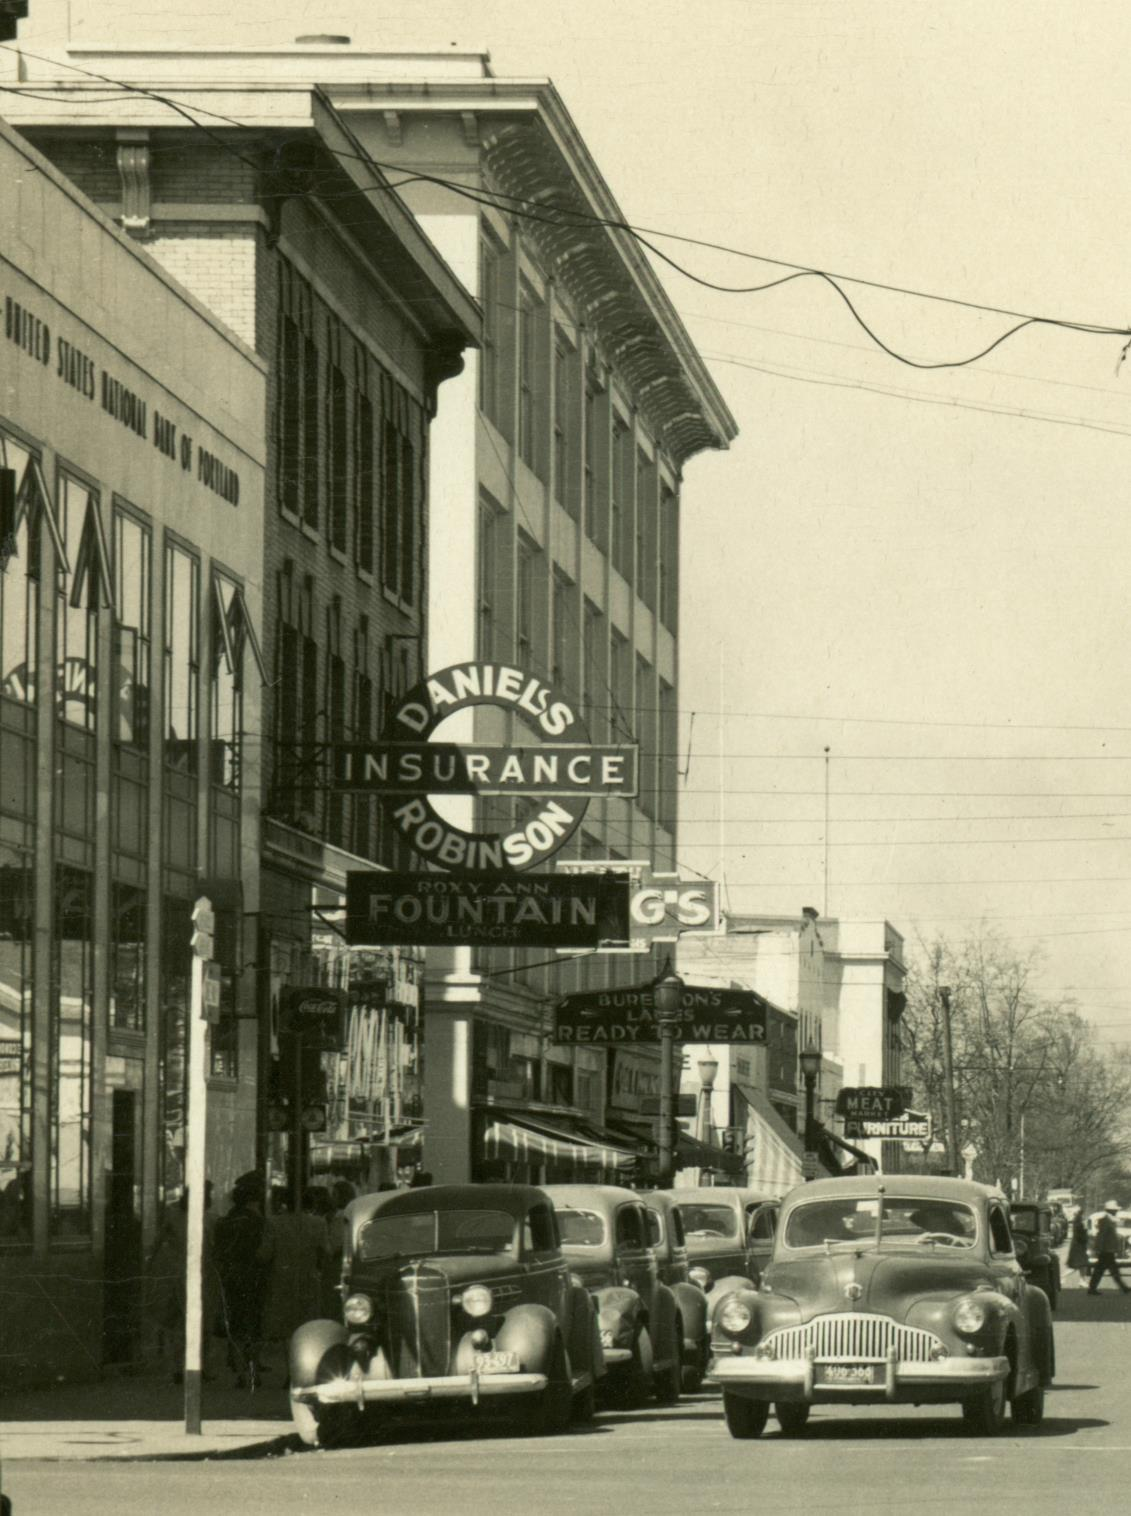 Daniels-Robinson Insurance sign, North Central, Medford, Oregon 1938-45